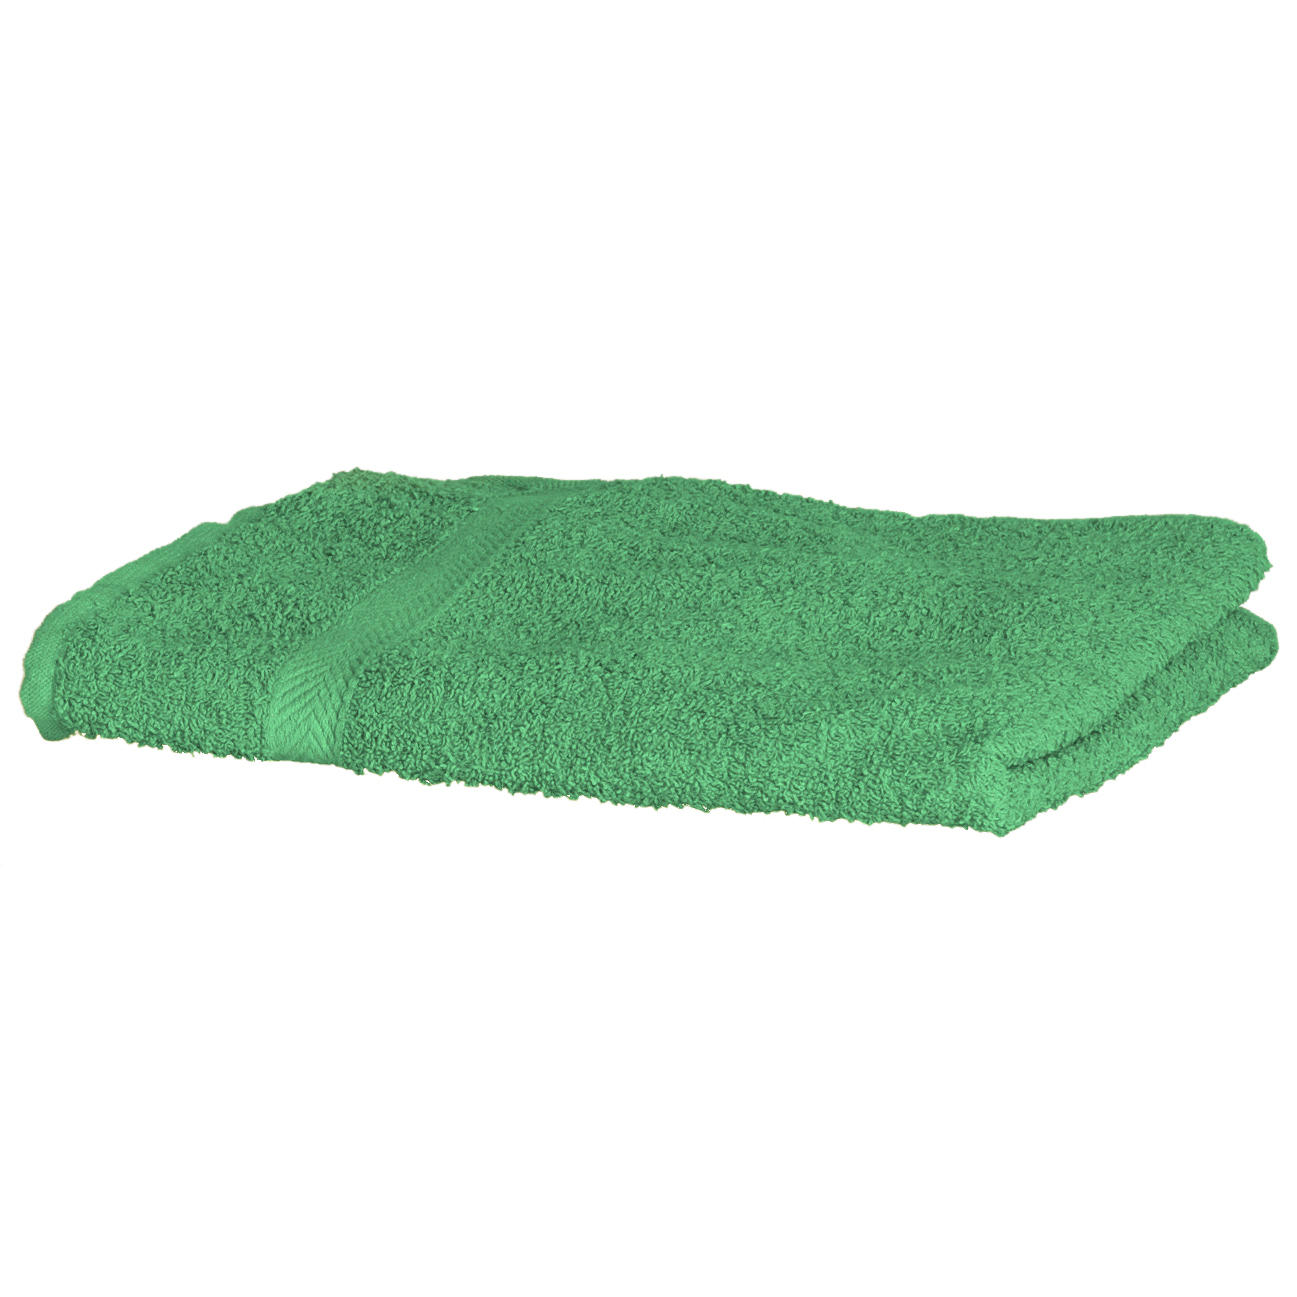 wimprint Luxury Custom Cotton Towel in bright green